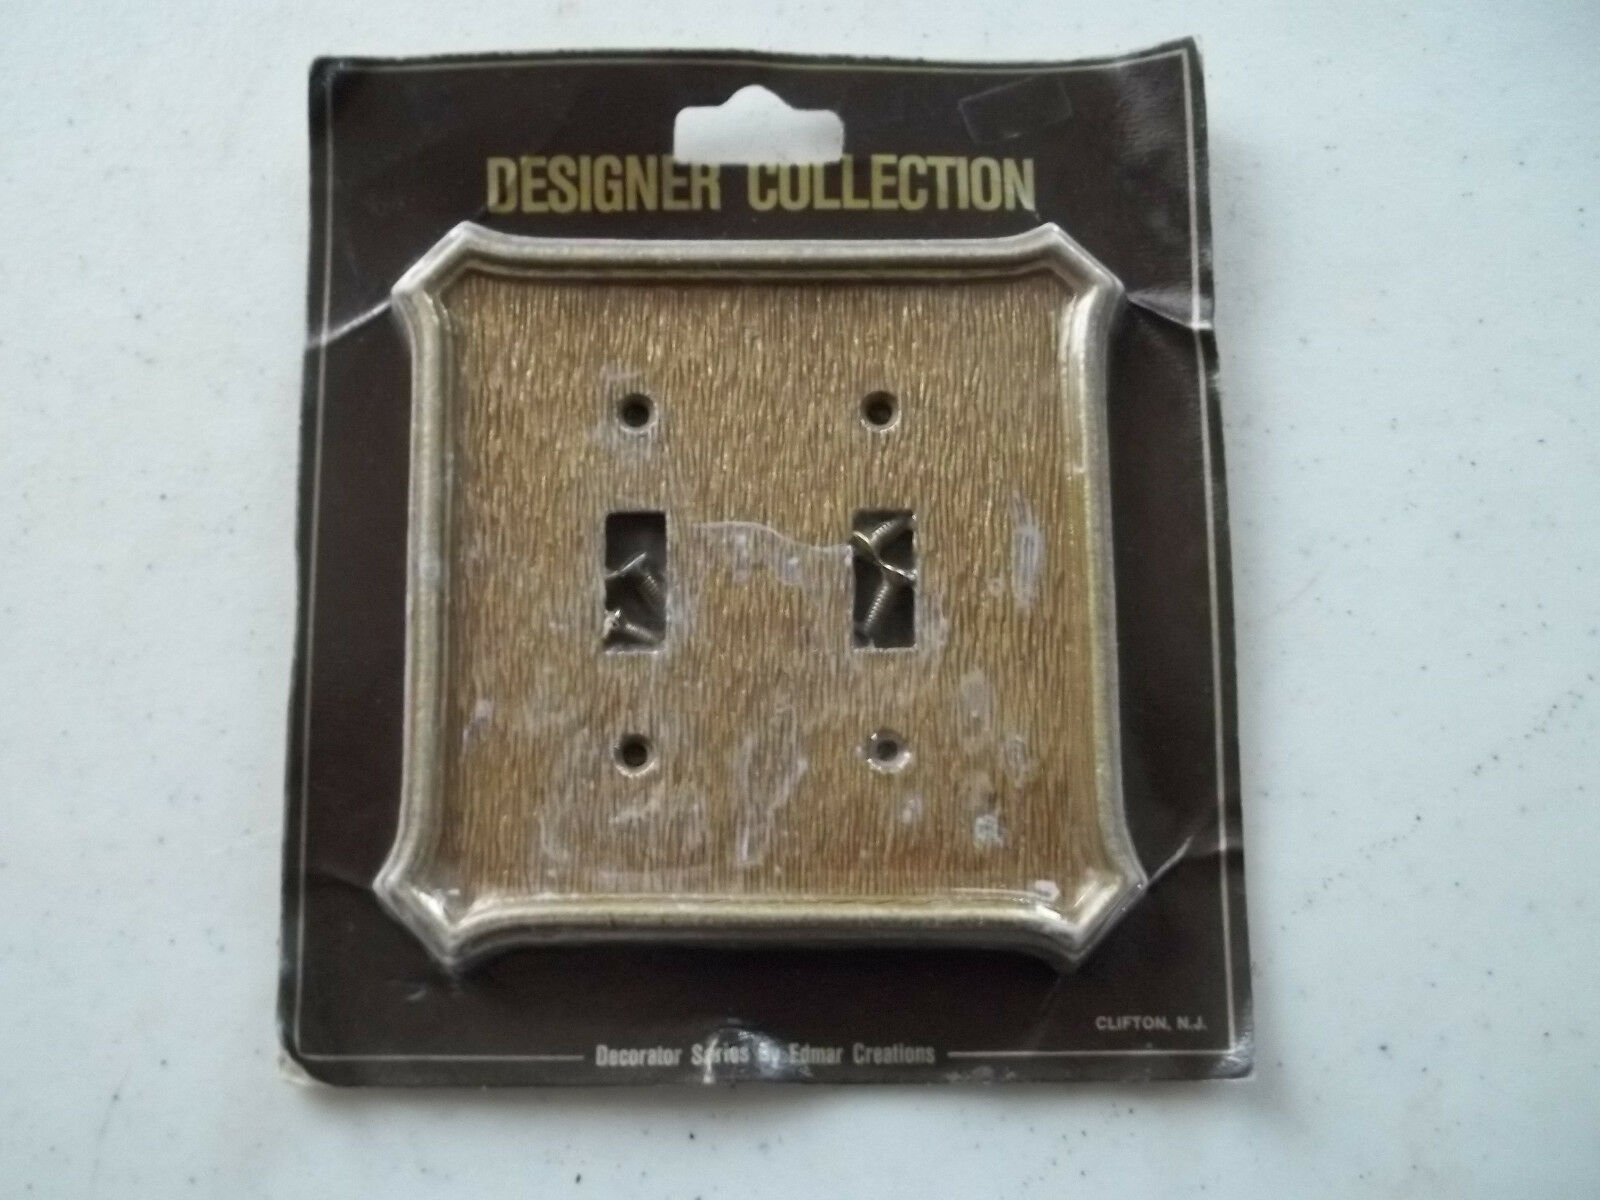 New Old Stock Edmar Creations Double Switch Plate Cover, Designer Coll.,Free S/H